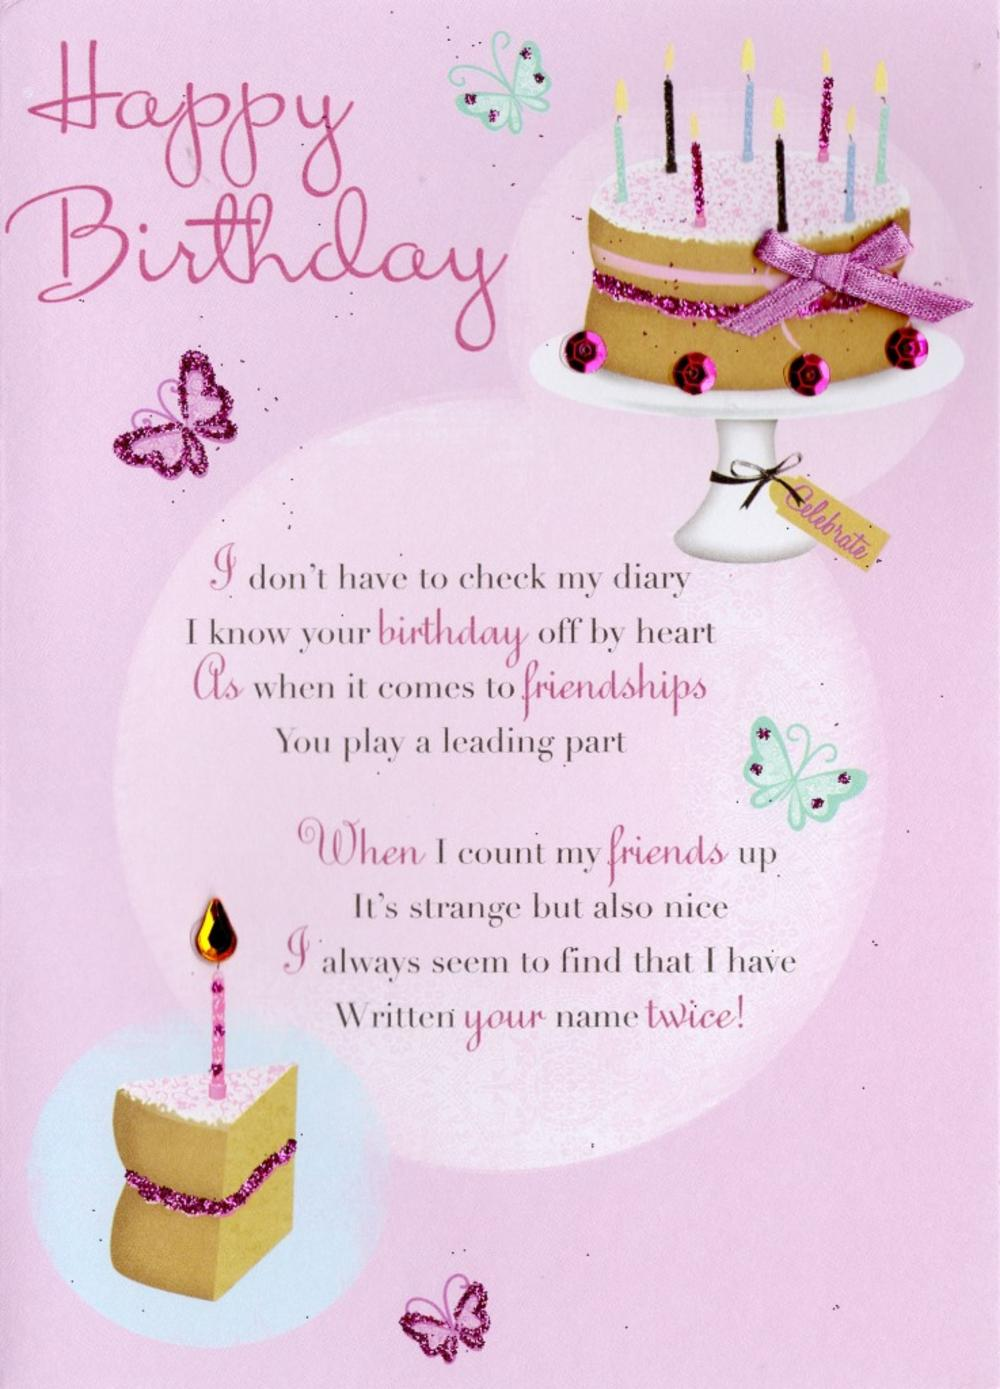 Friend happy birthday greeting card cards love kates friend happy birthday greeting card m4hsunfo